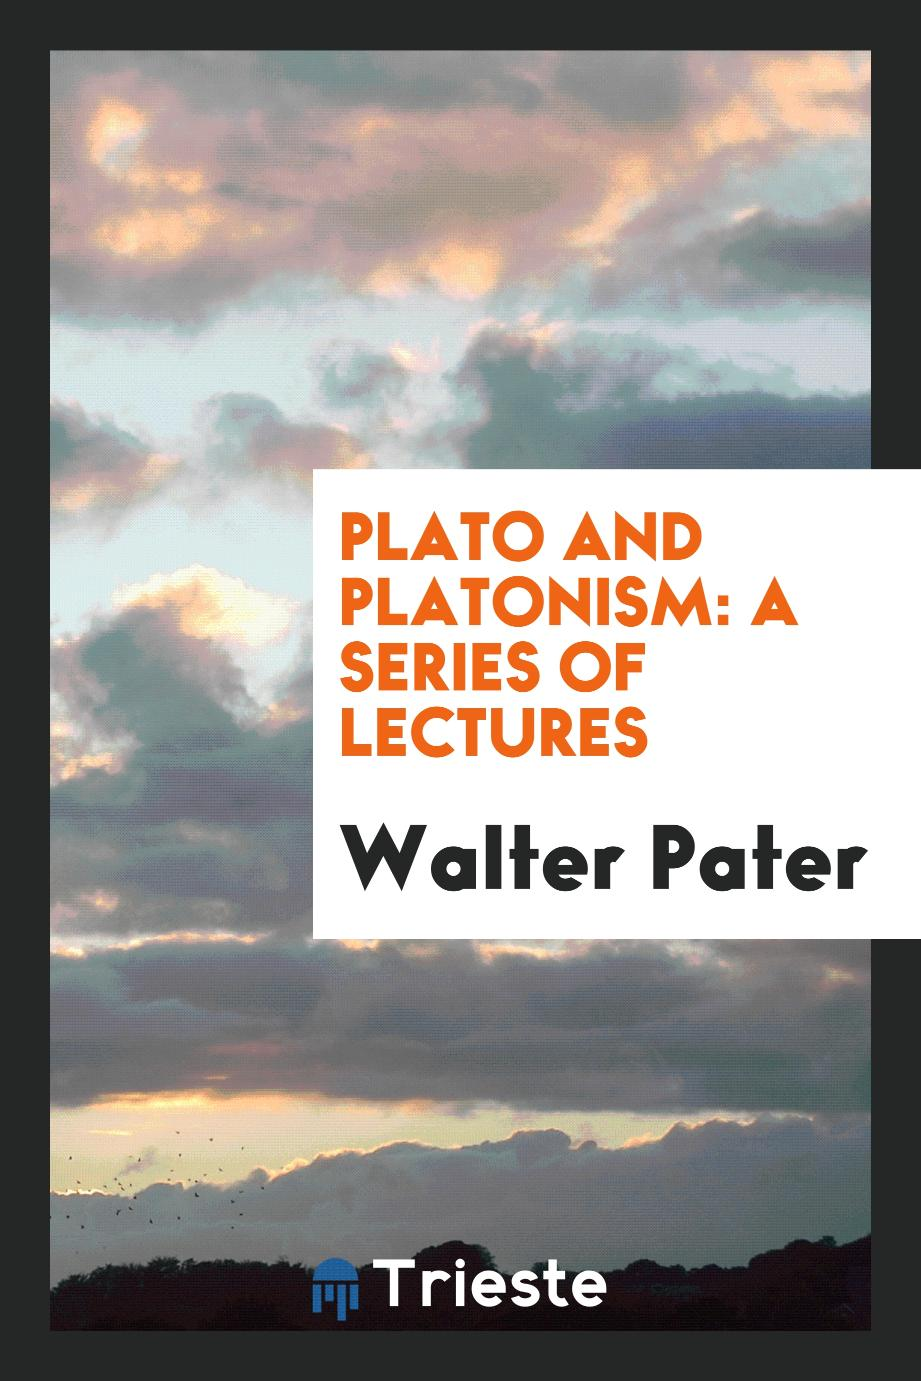 Plato and Platonism: a series of lectures